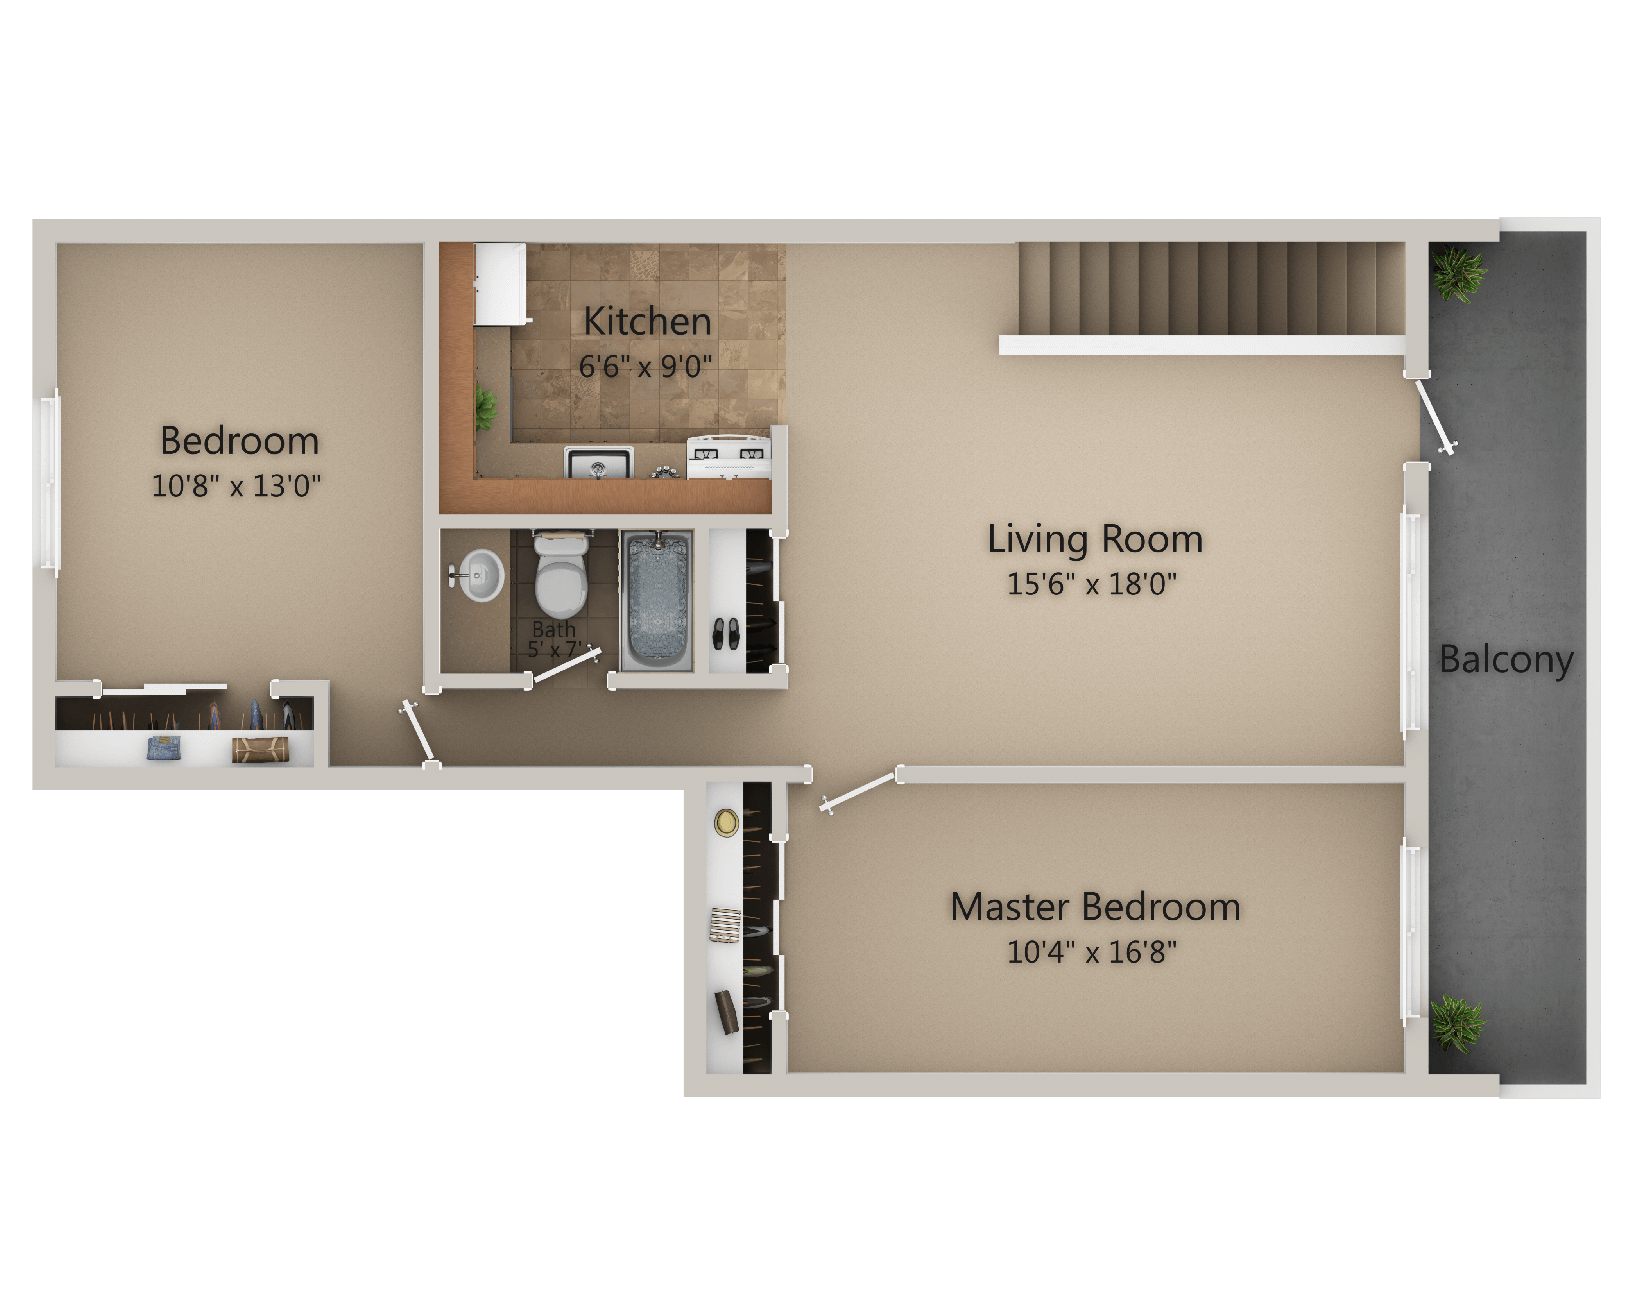 Valley View Apartments - 2 Bedroom